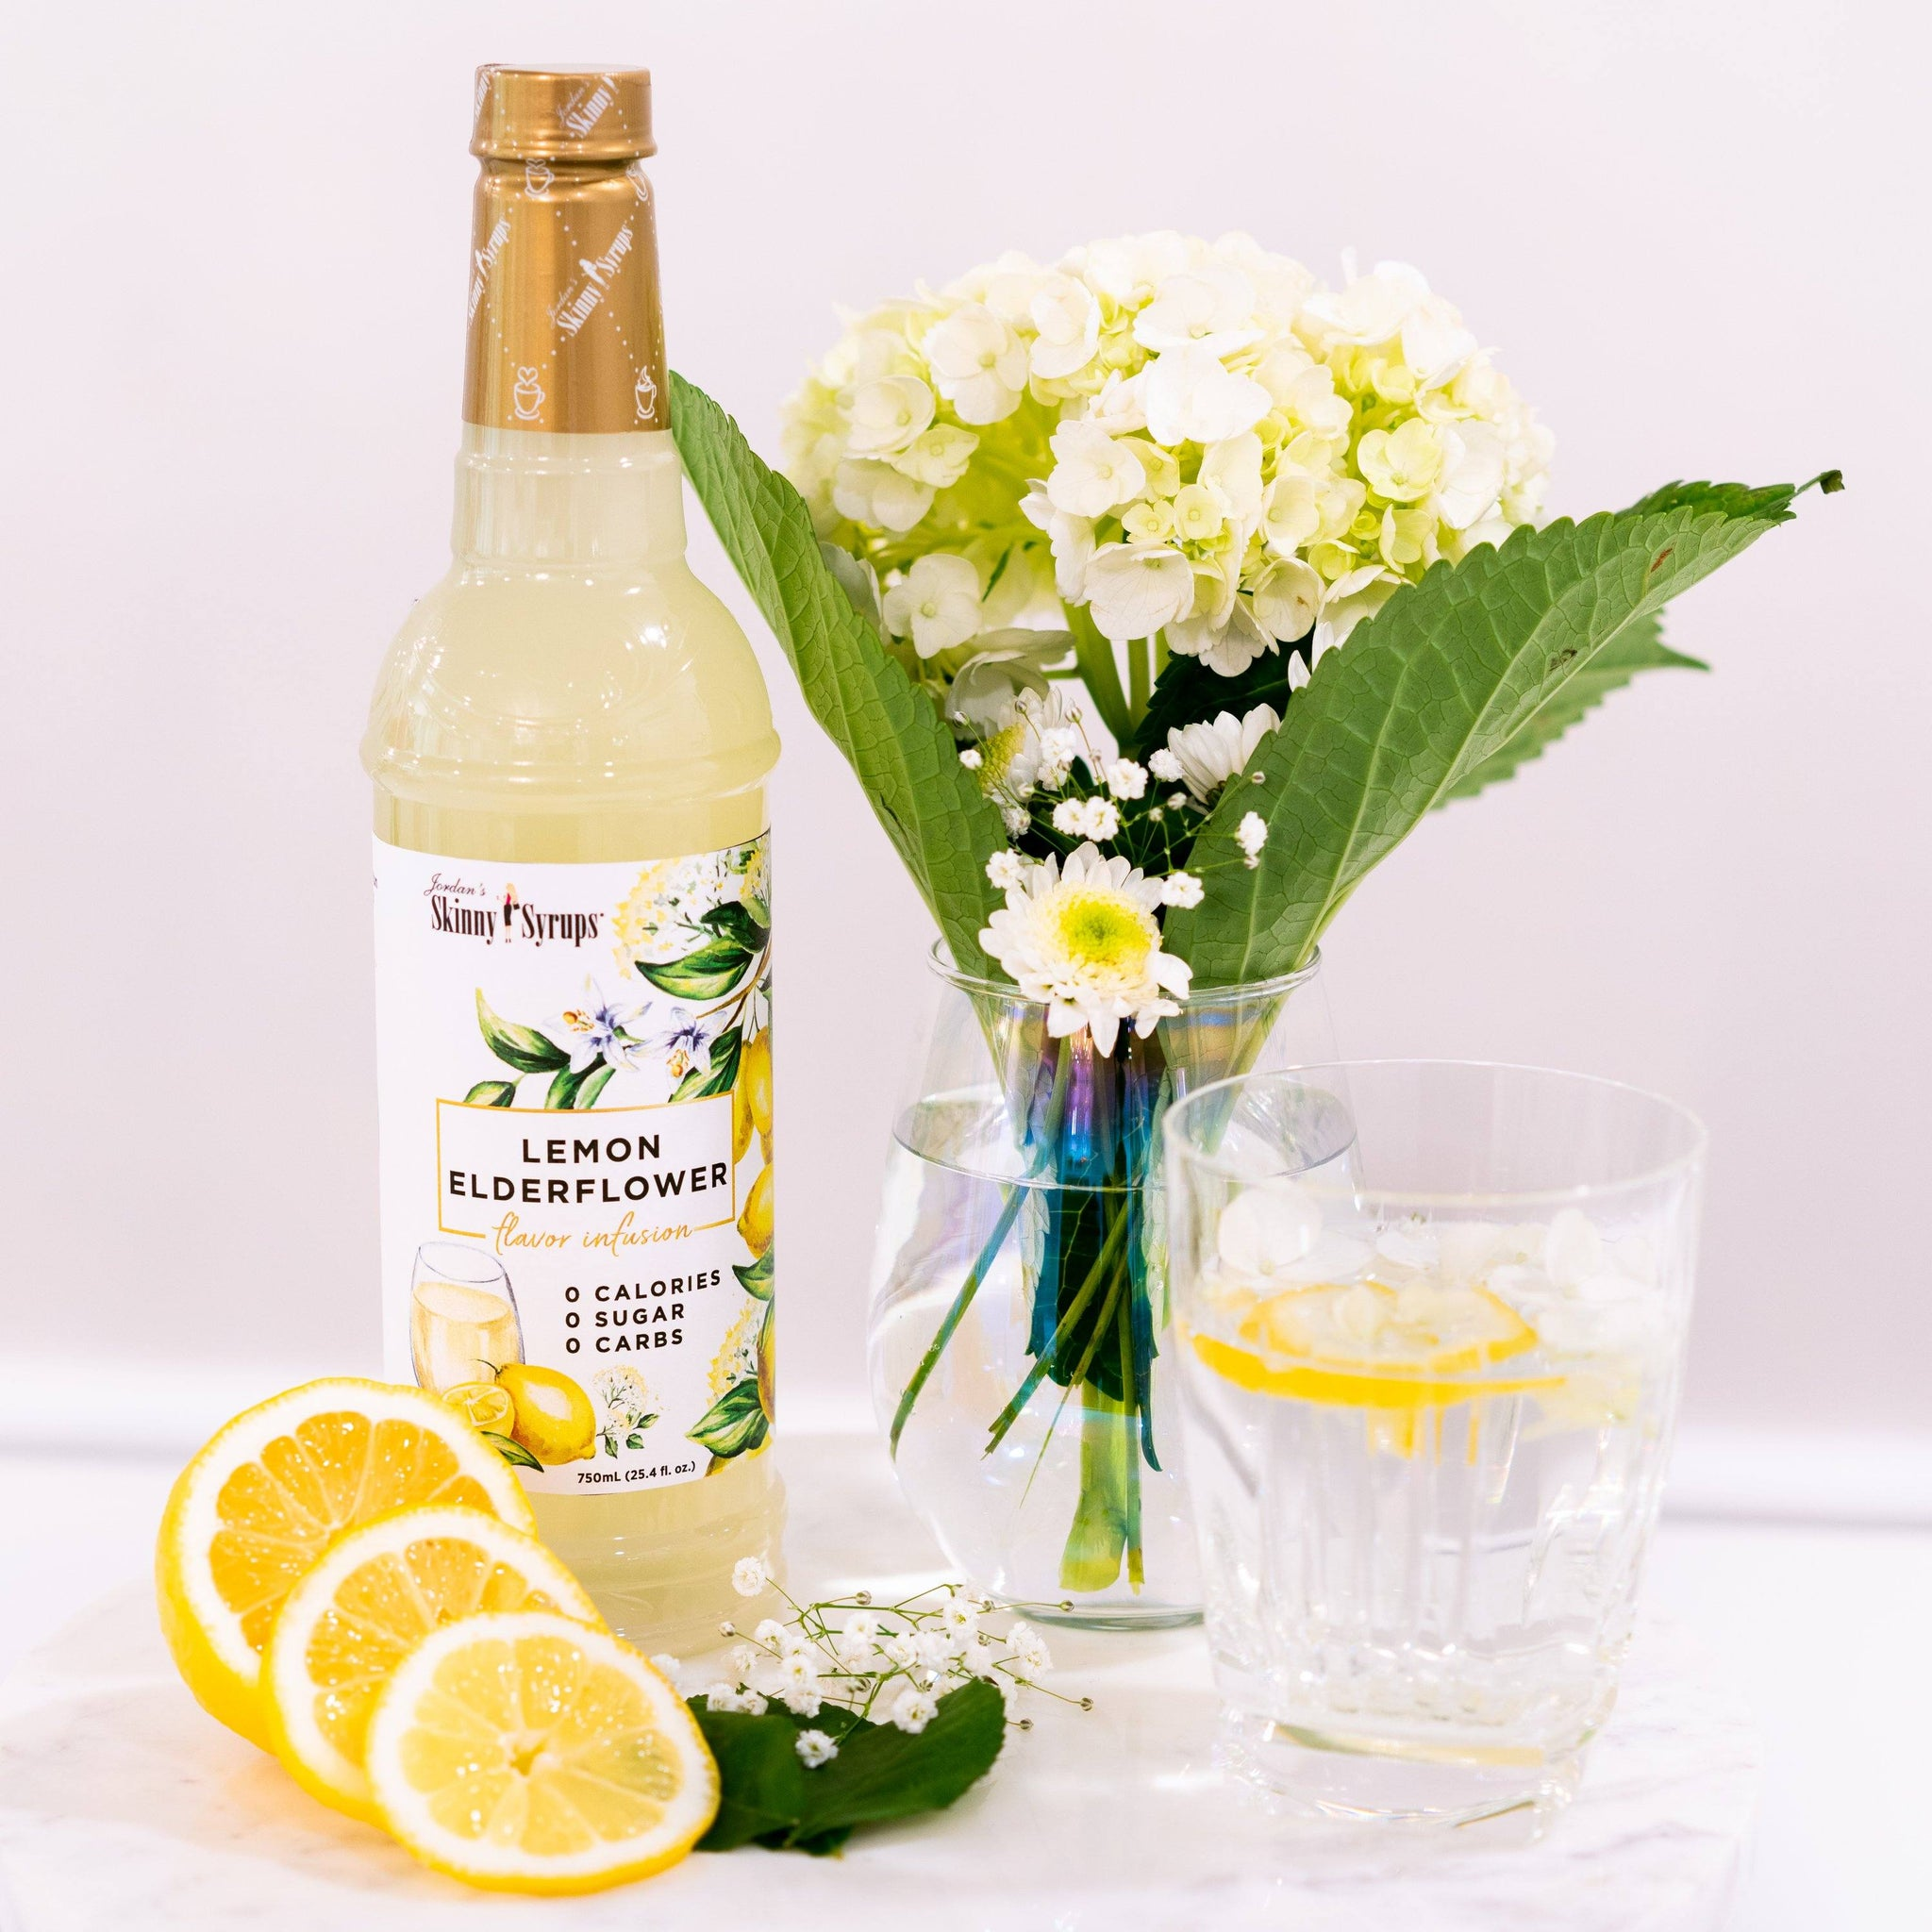 Sugar Free Lemon Elderflower Syrup - Skinny Mixes